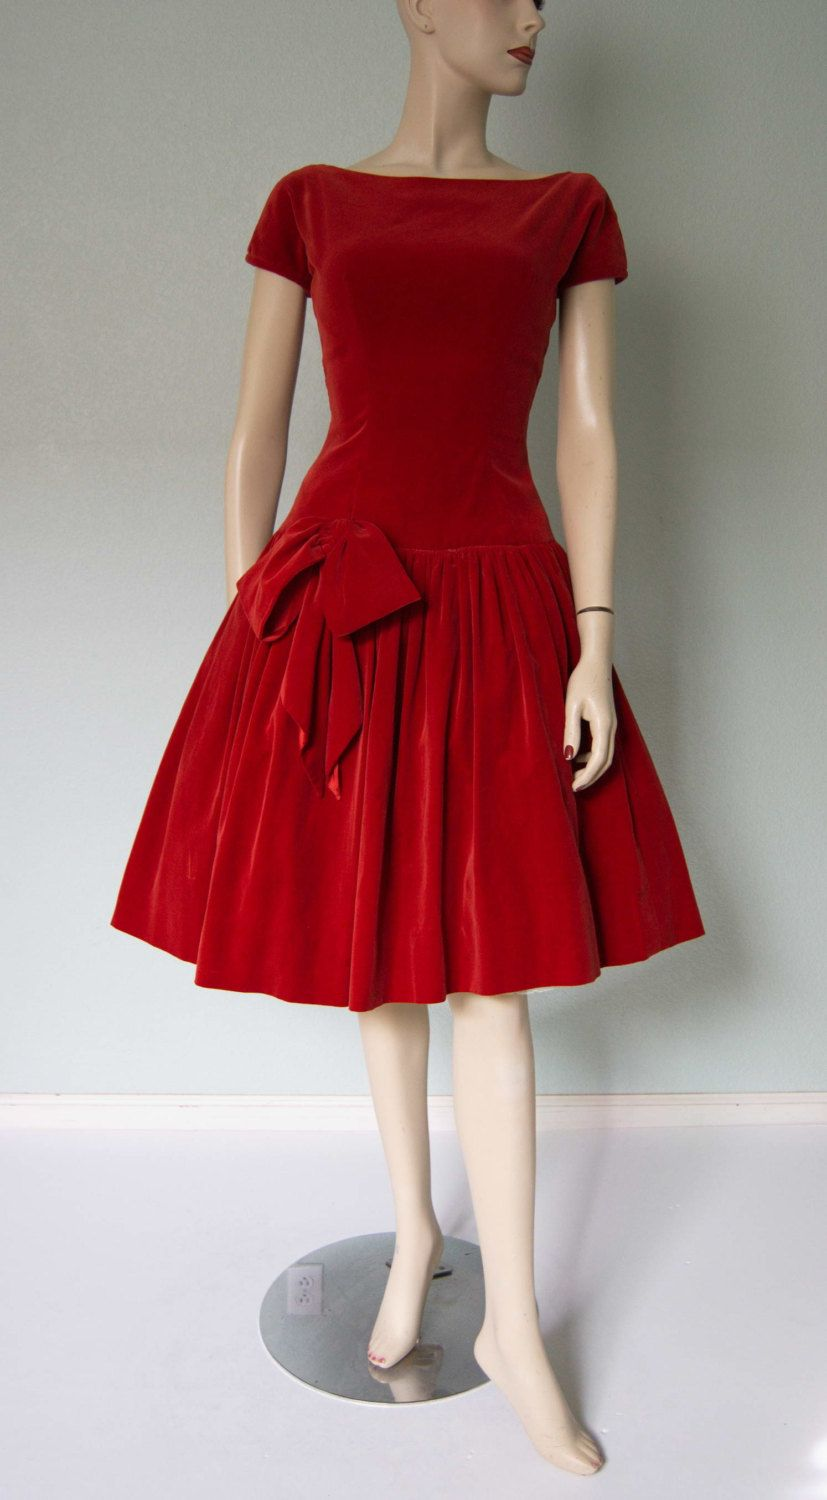 f62d1e5e41a 1950s Nicely Made Red Velvet Holiday Party - Cocktail - Dinner and ...